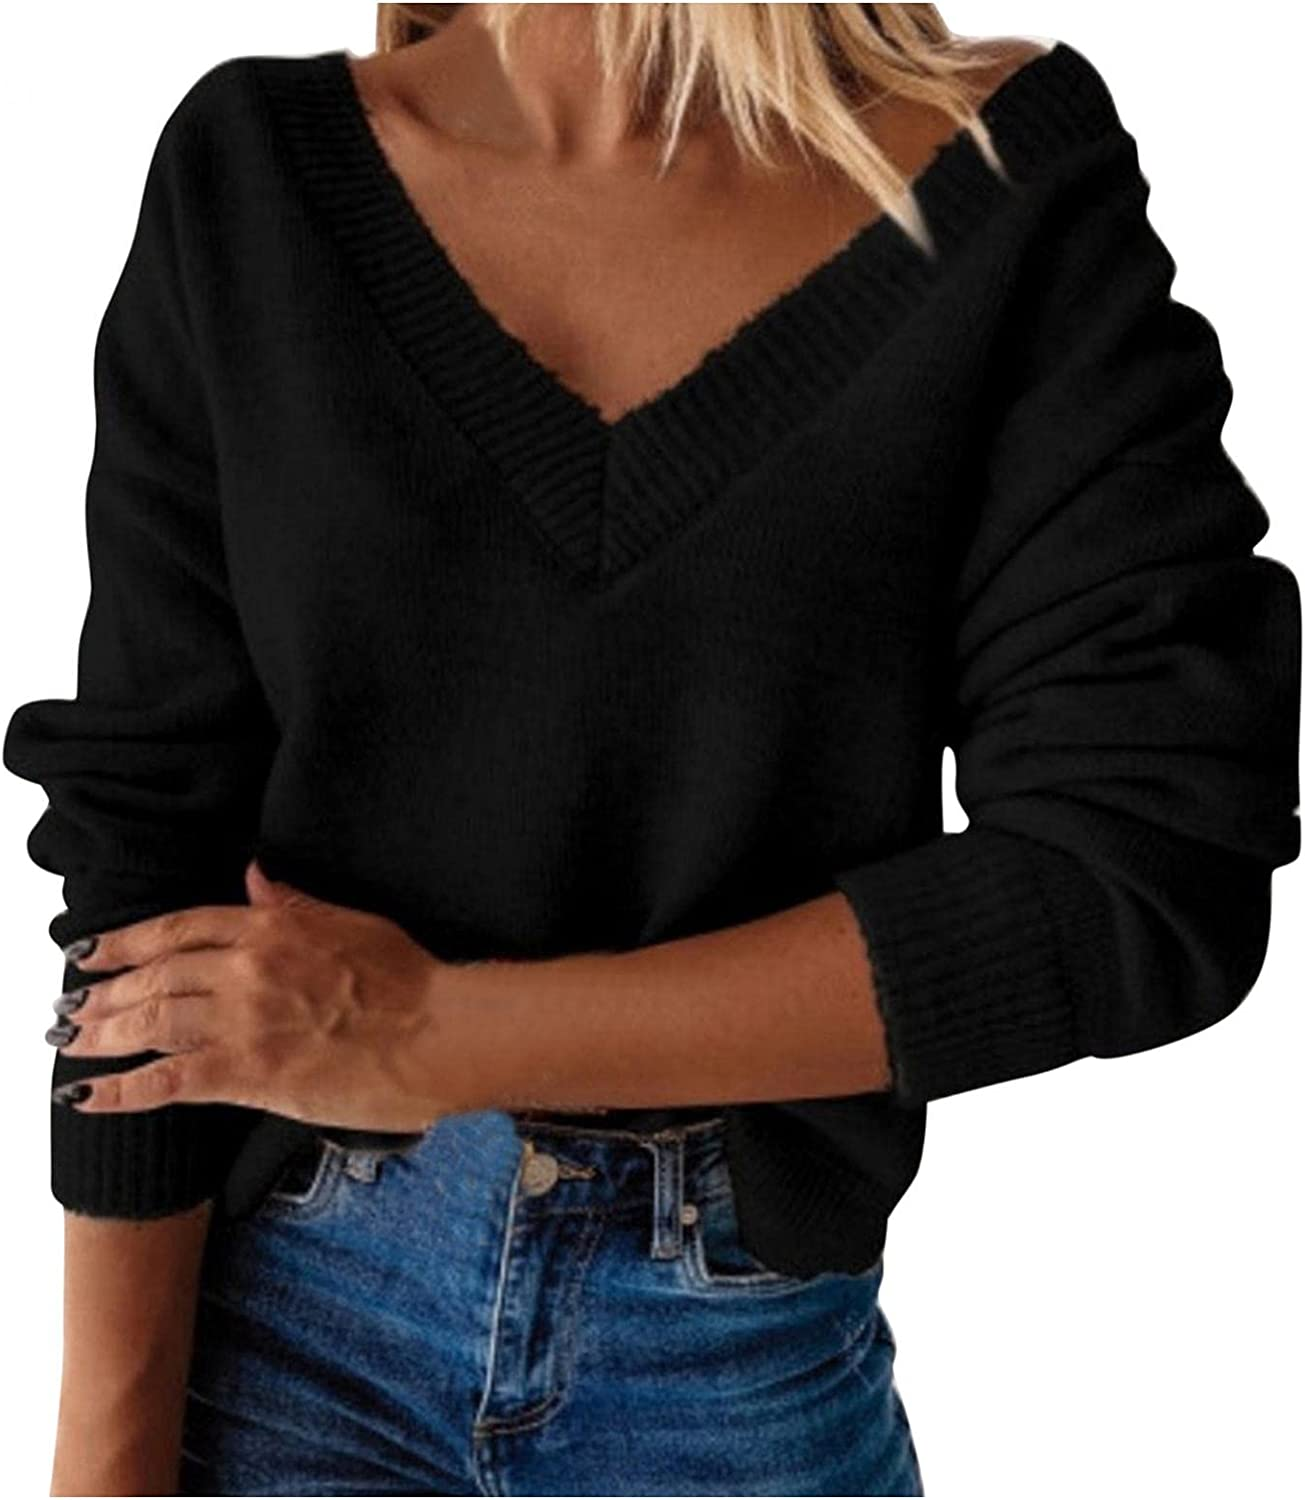 Sweaters for Women,Women's V Neck Oversized Long Sleeve Winter Warm Knitted Sweater Casual Pullover Jumper Tops